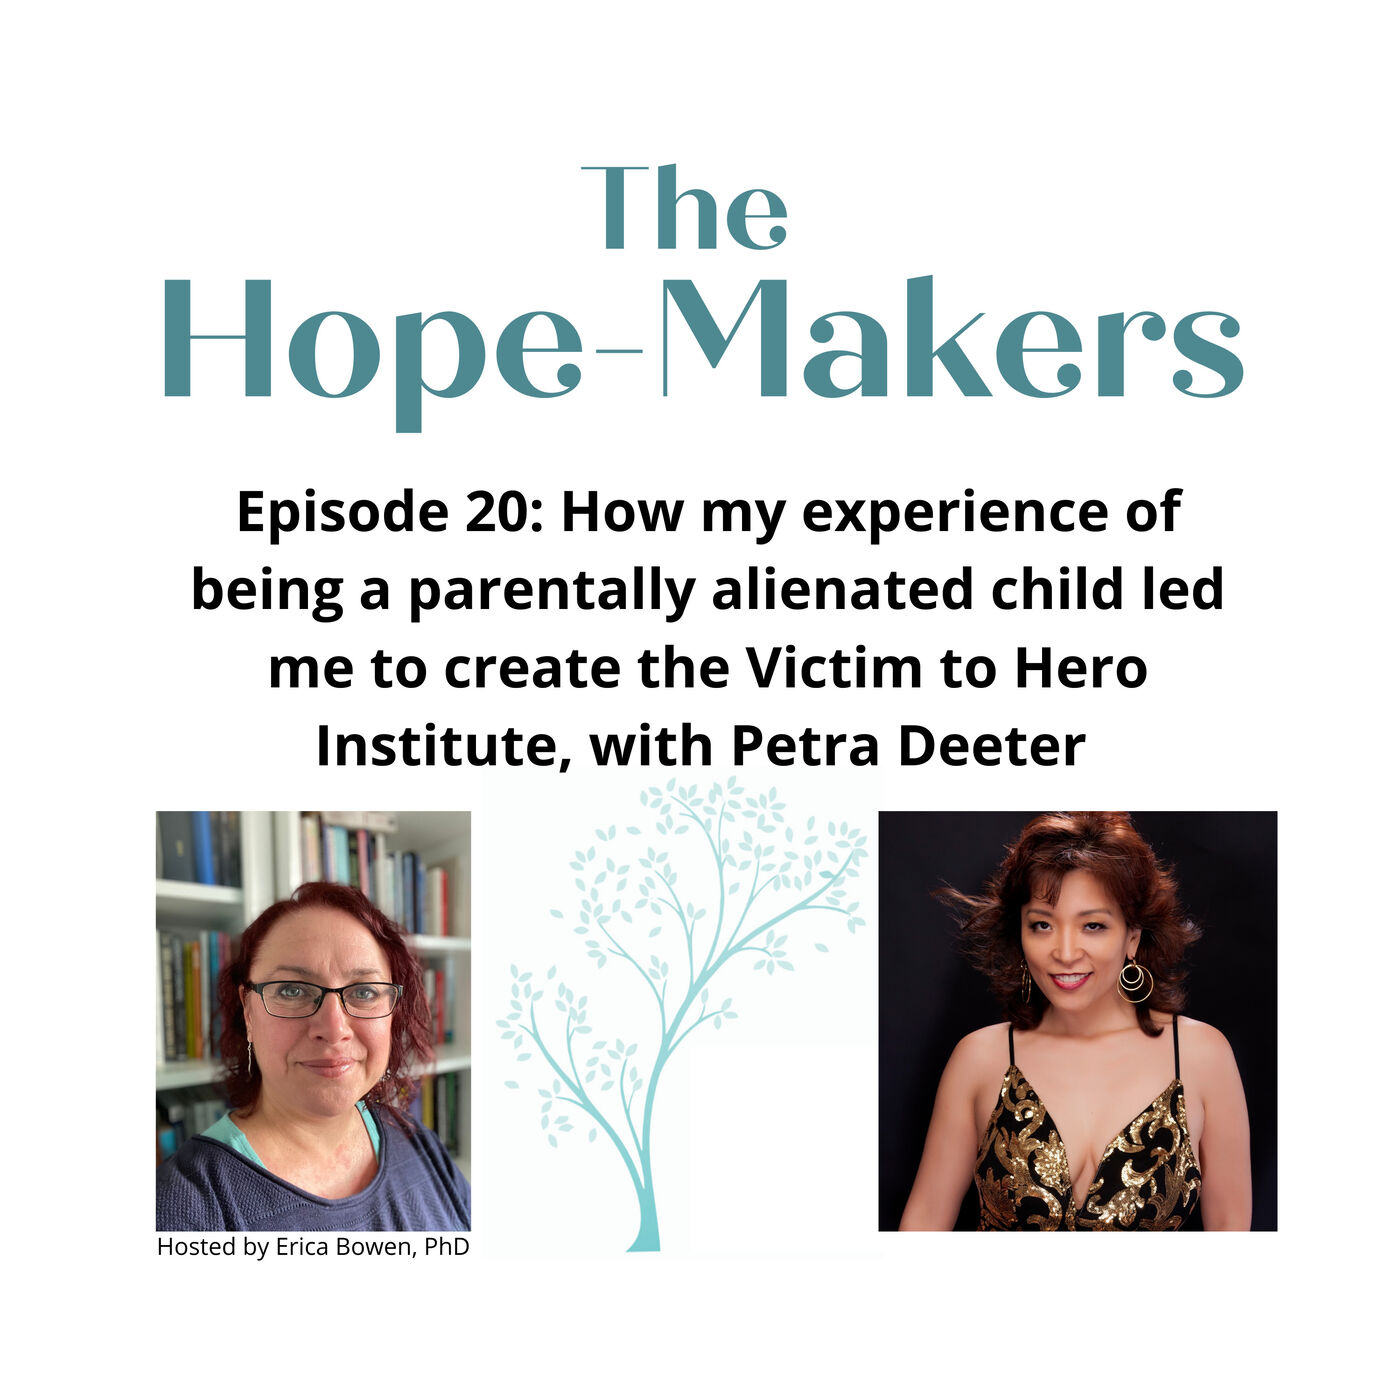 Episode 20: How my experience of being a parentally alienated child led me to create the Victim to Hero Institute, with Petra Deeter